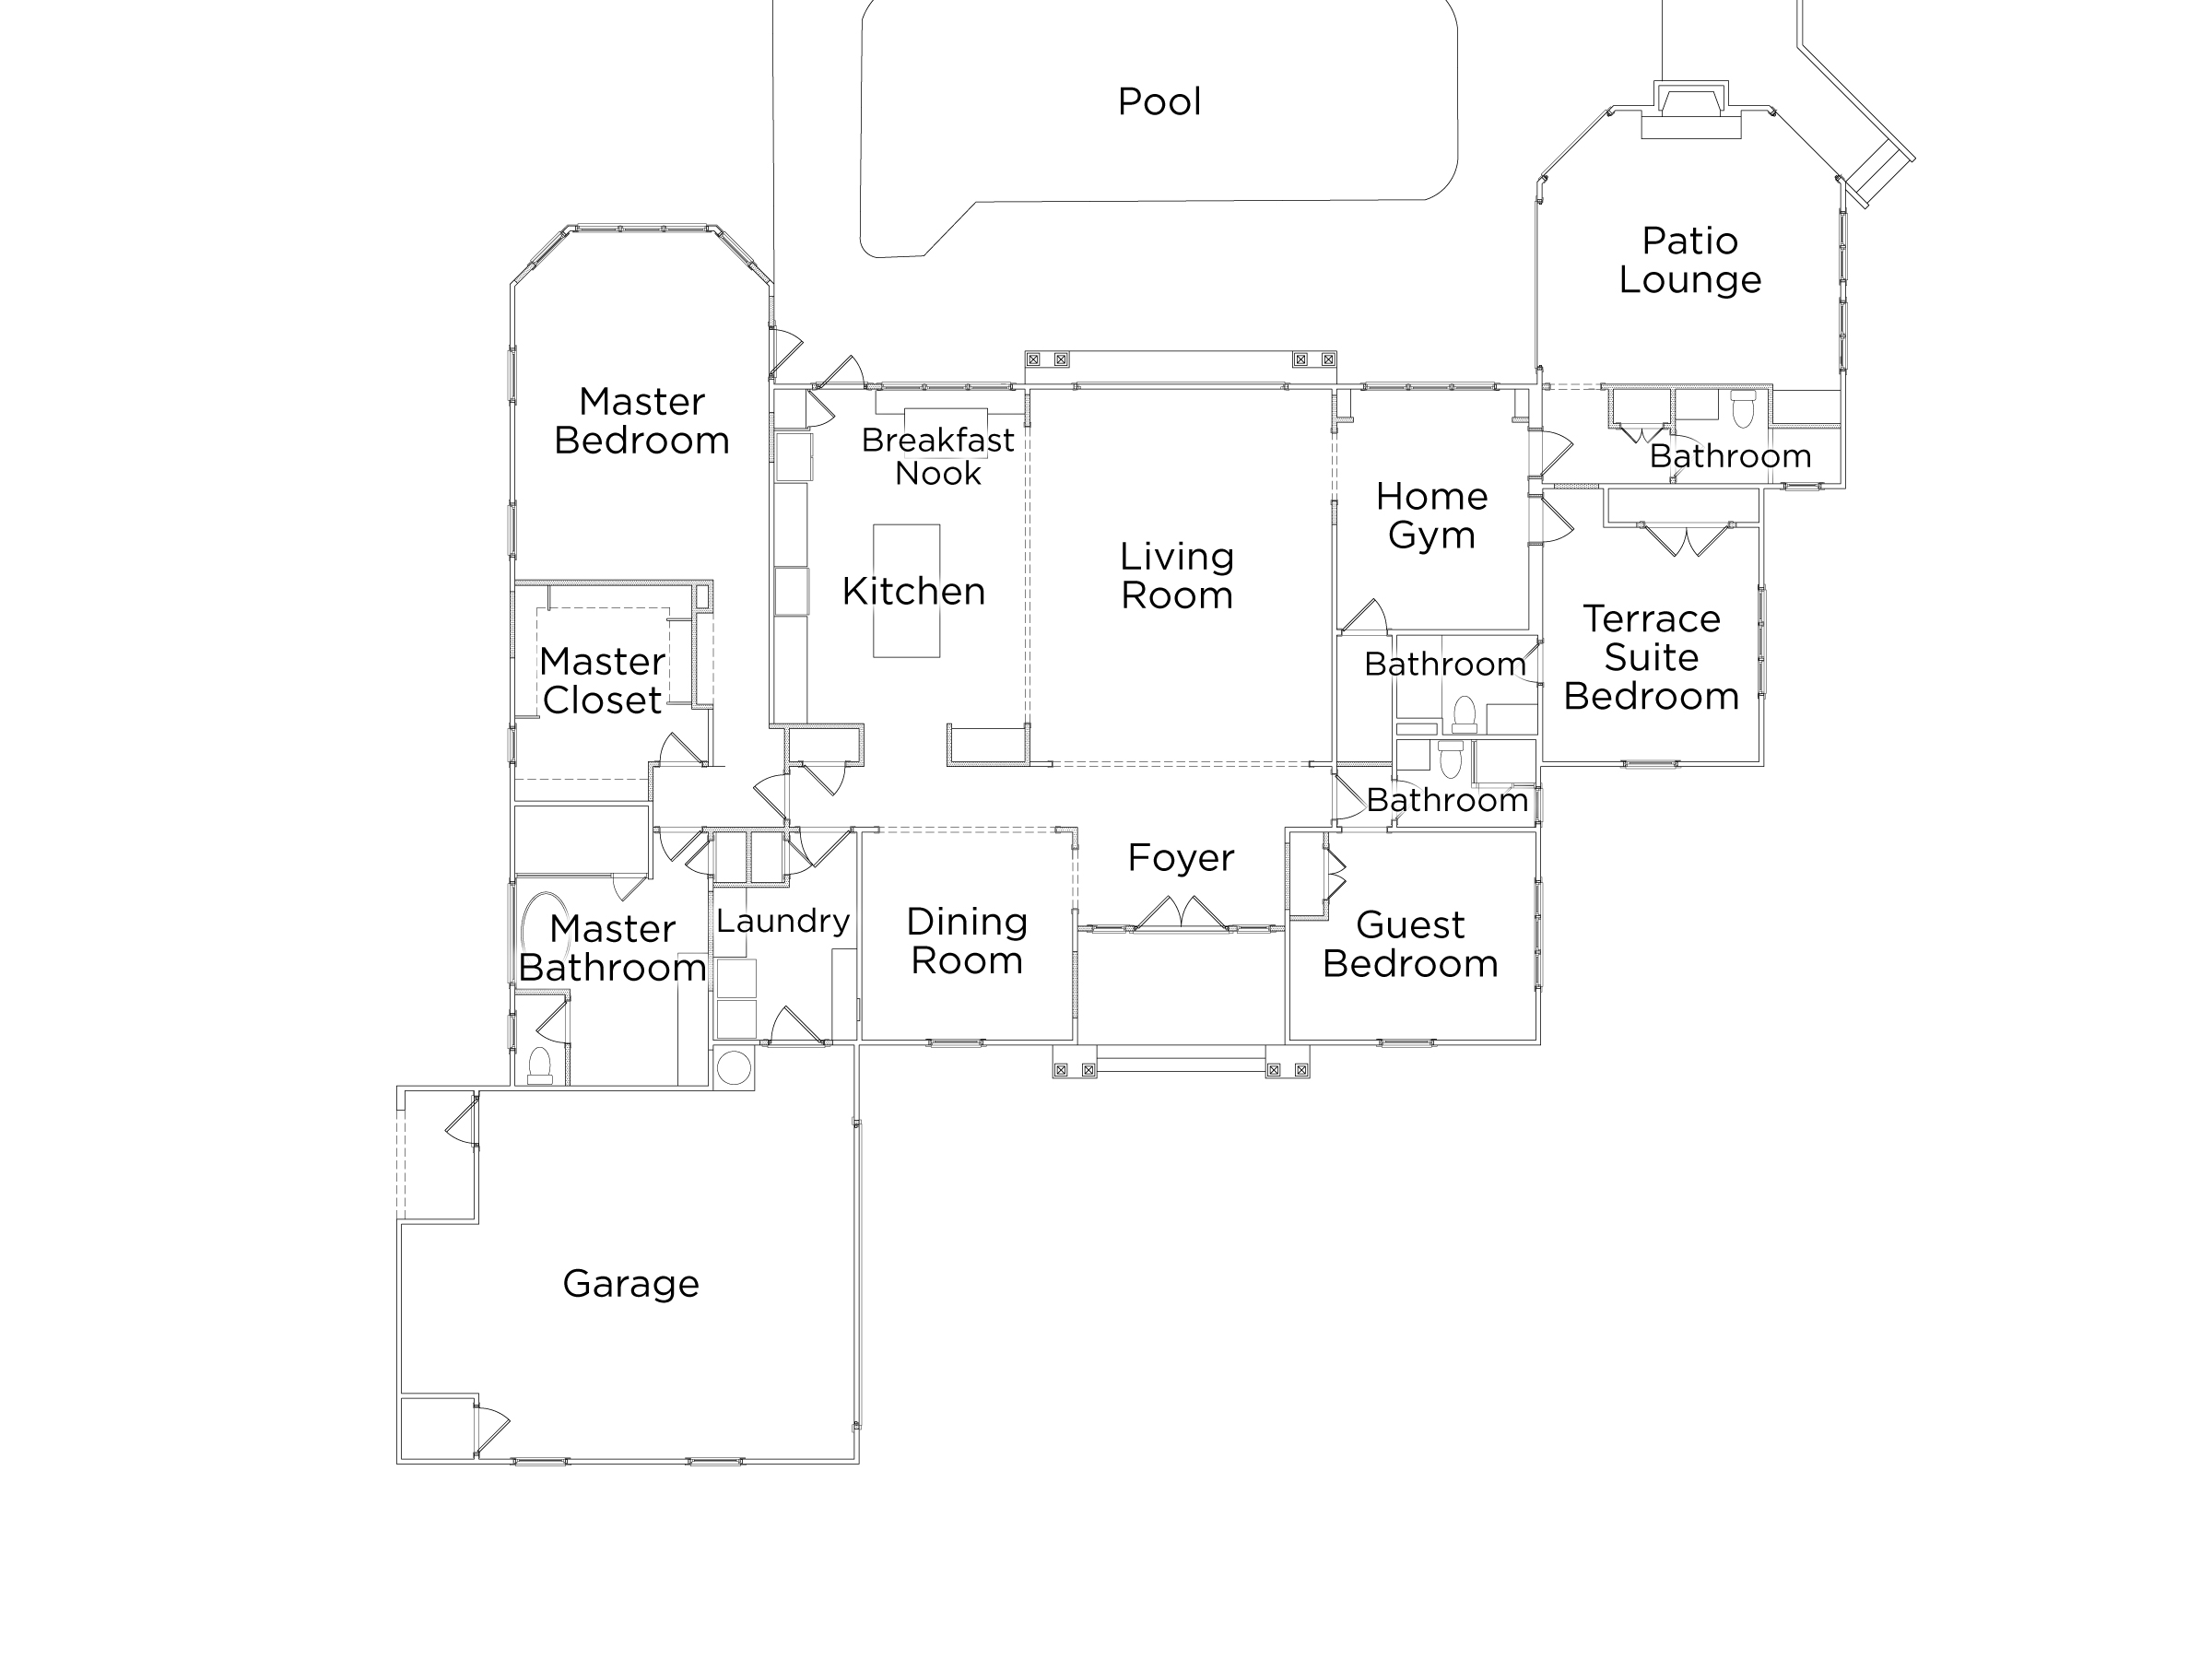 Discover the Floor Plan for HGTV Dream Home 2017 HGTV Dream Home